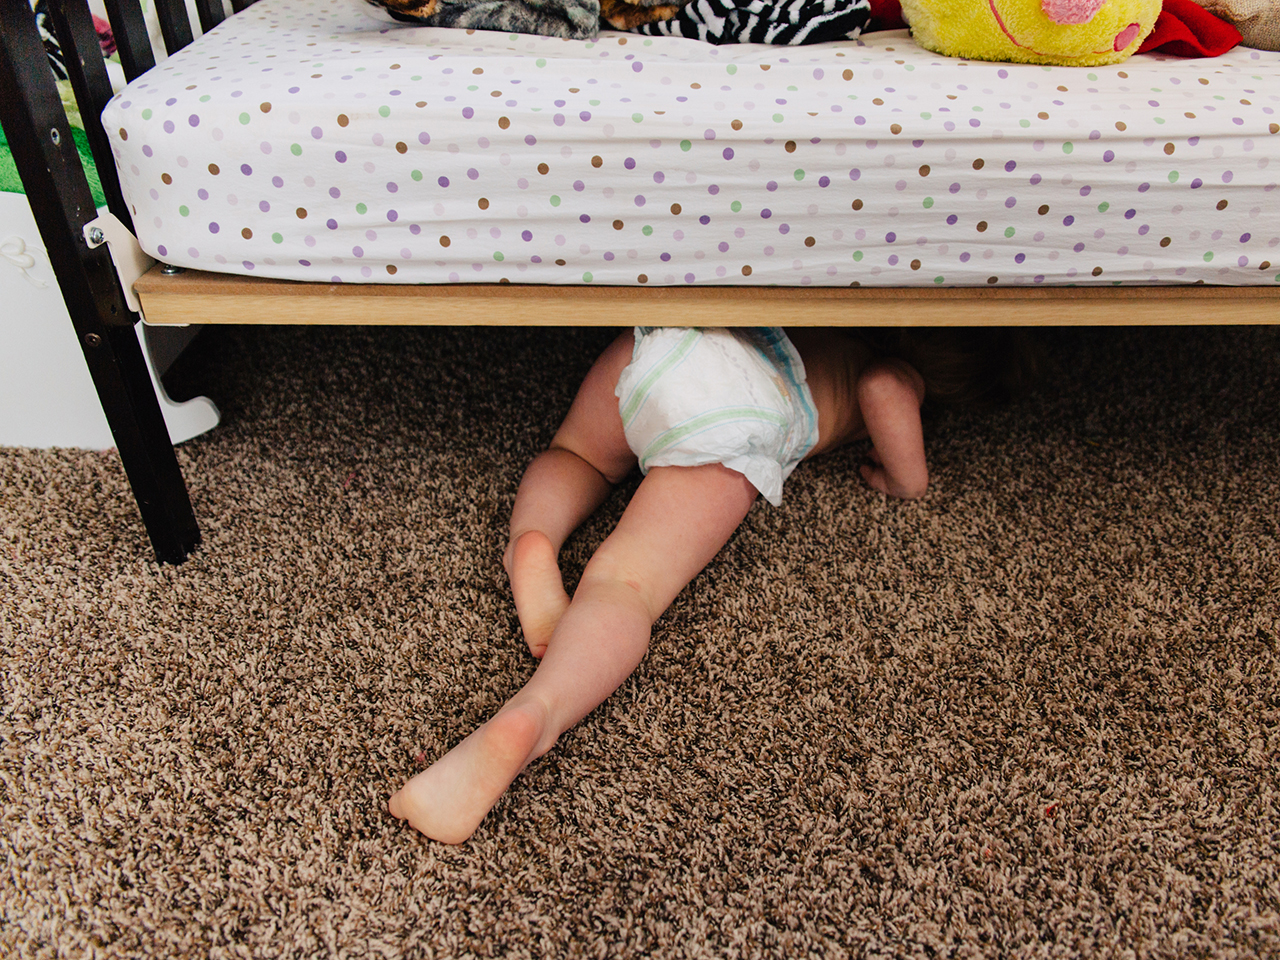 Small child in diaper crawling under bed